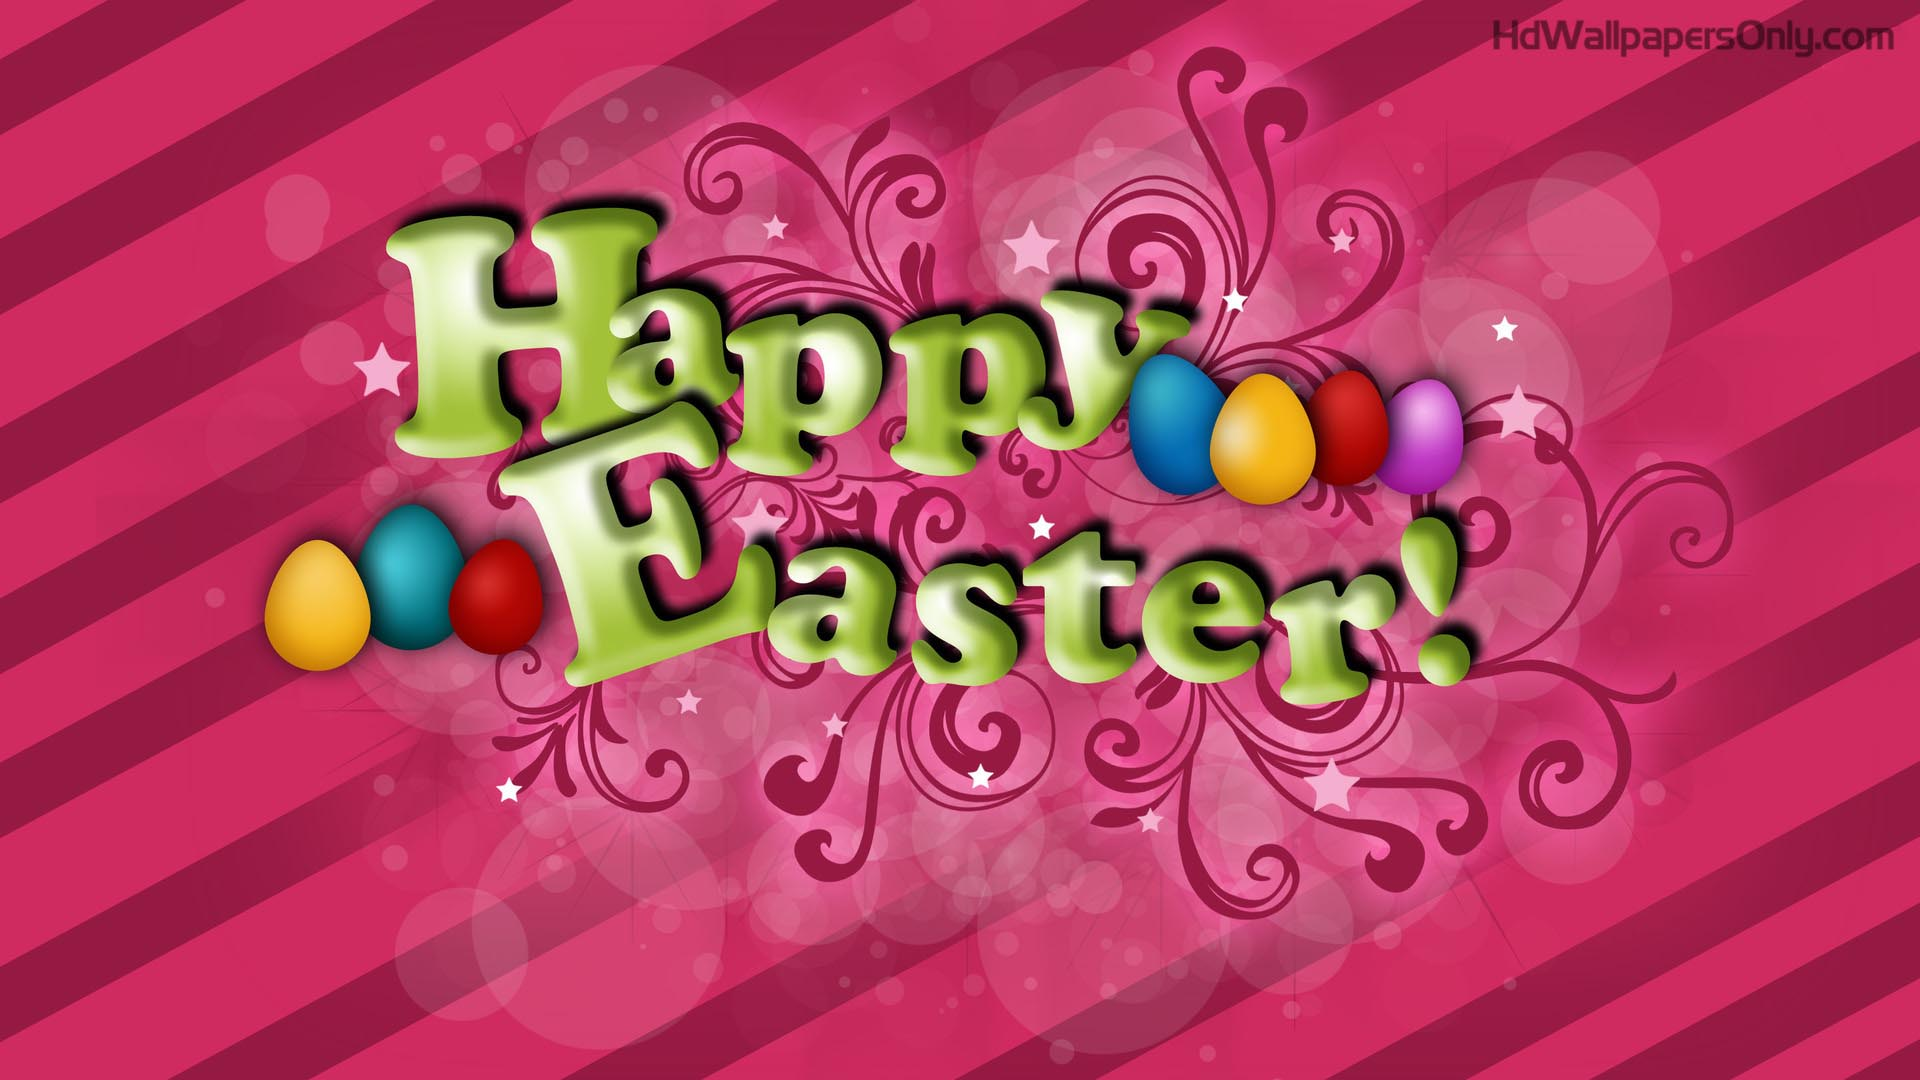 Free Easter Wallpapers Hd Qualityhd Wallpapers Only Happy Easter